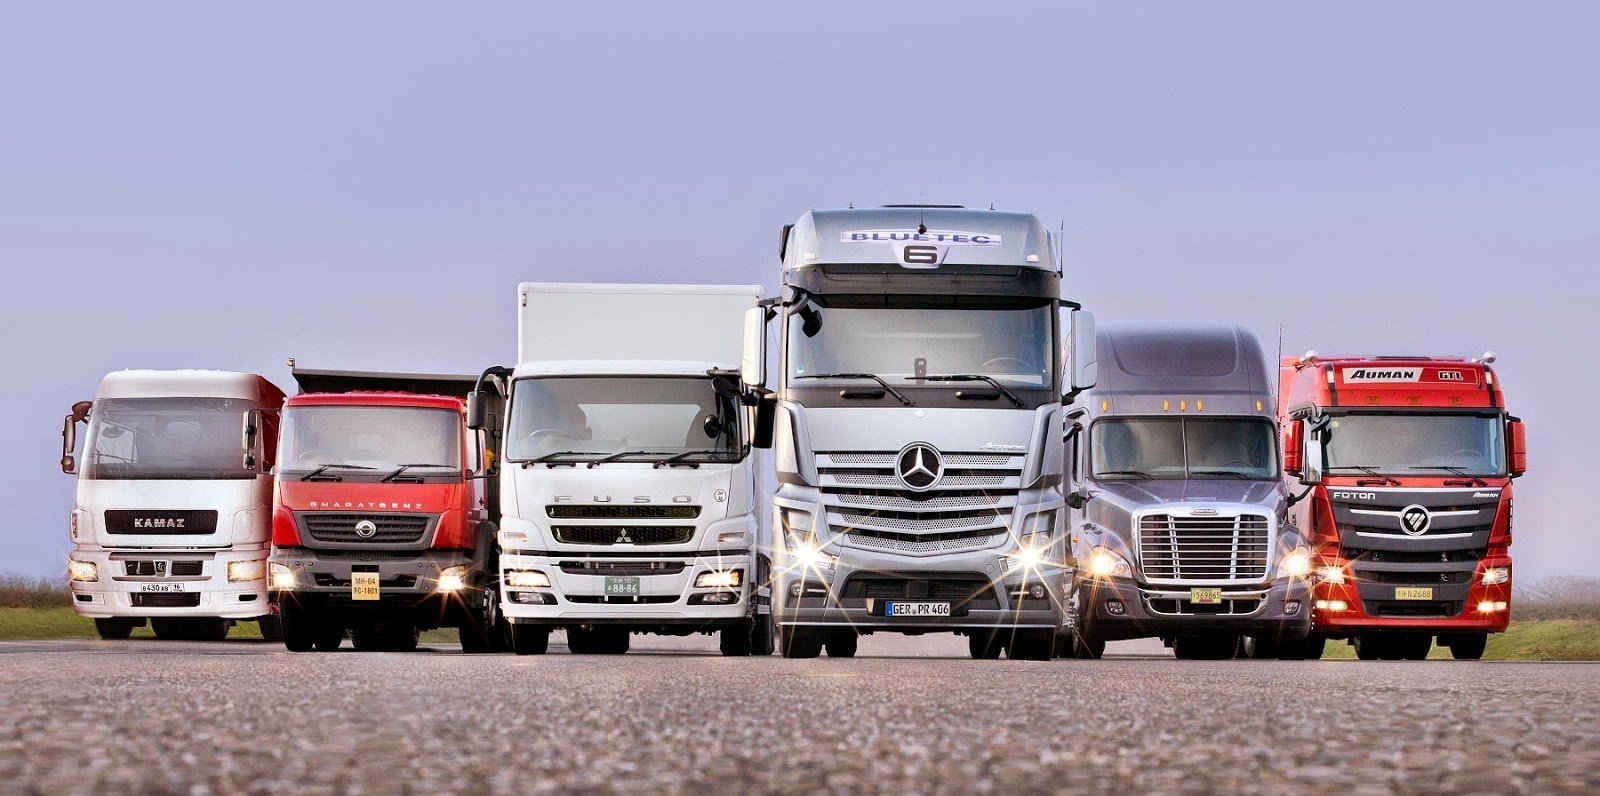 Truck driving education-2020